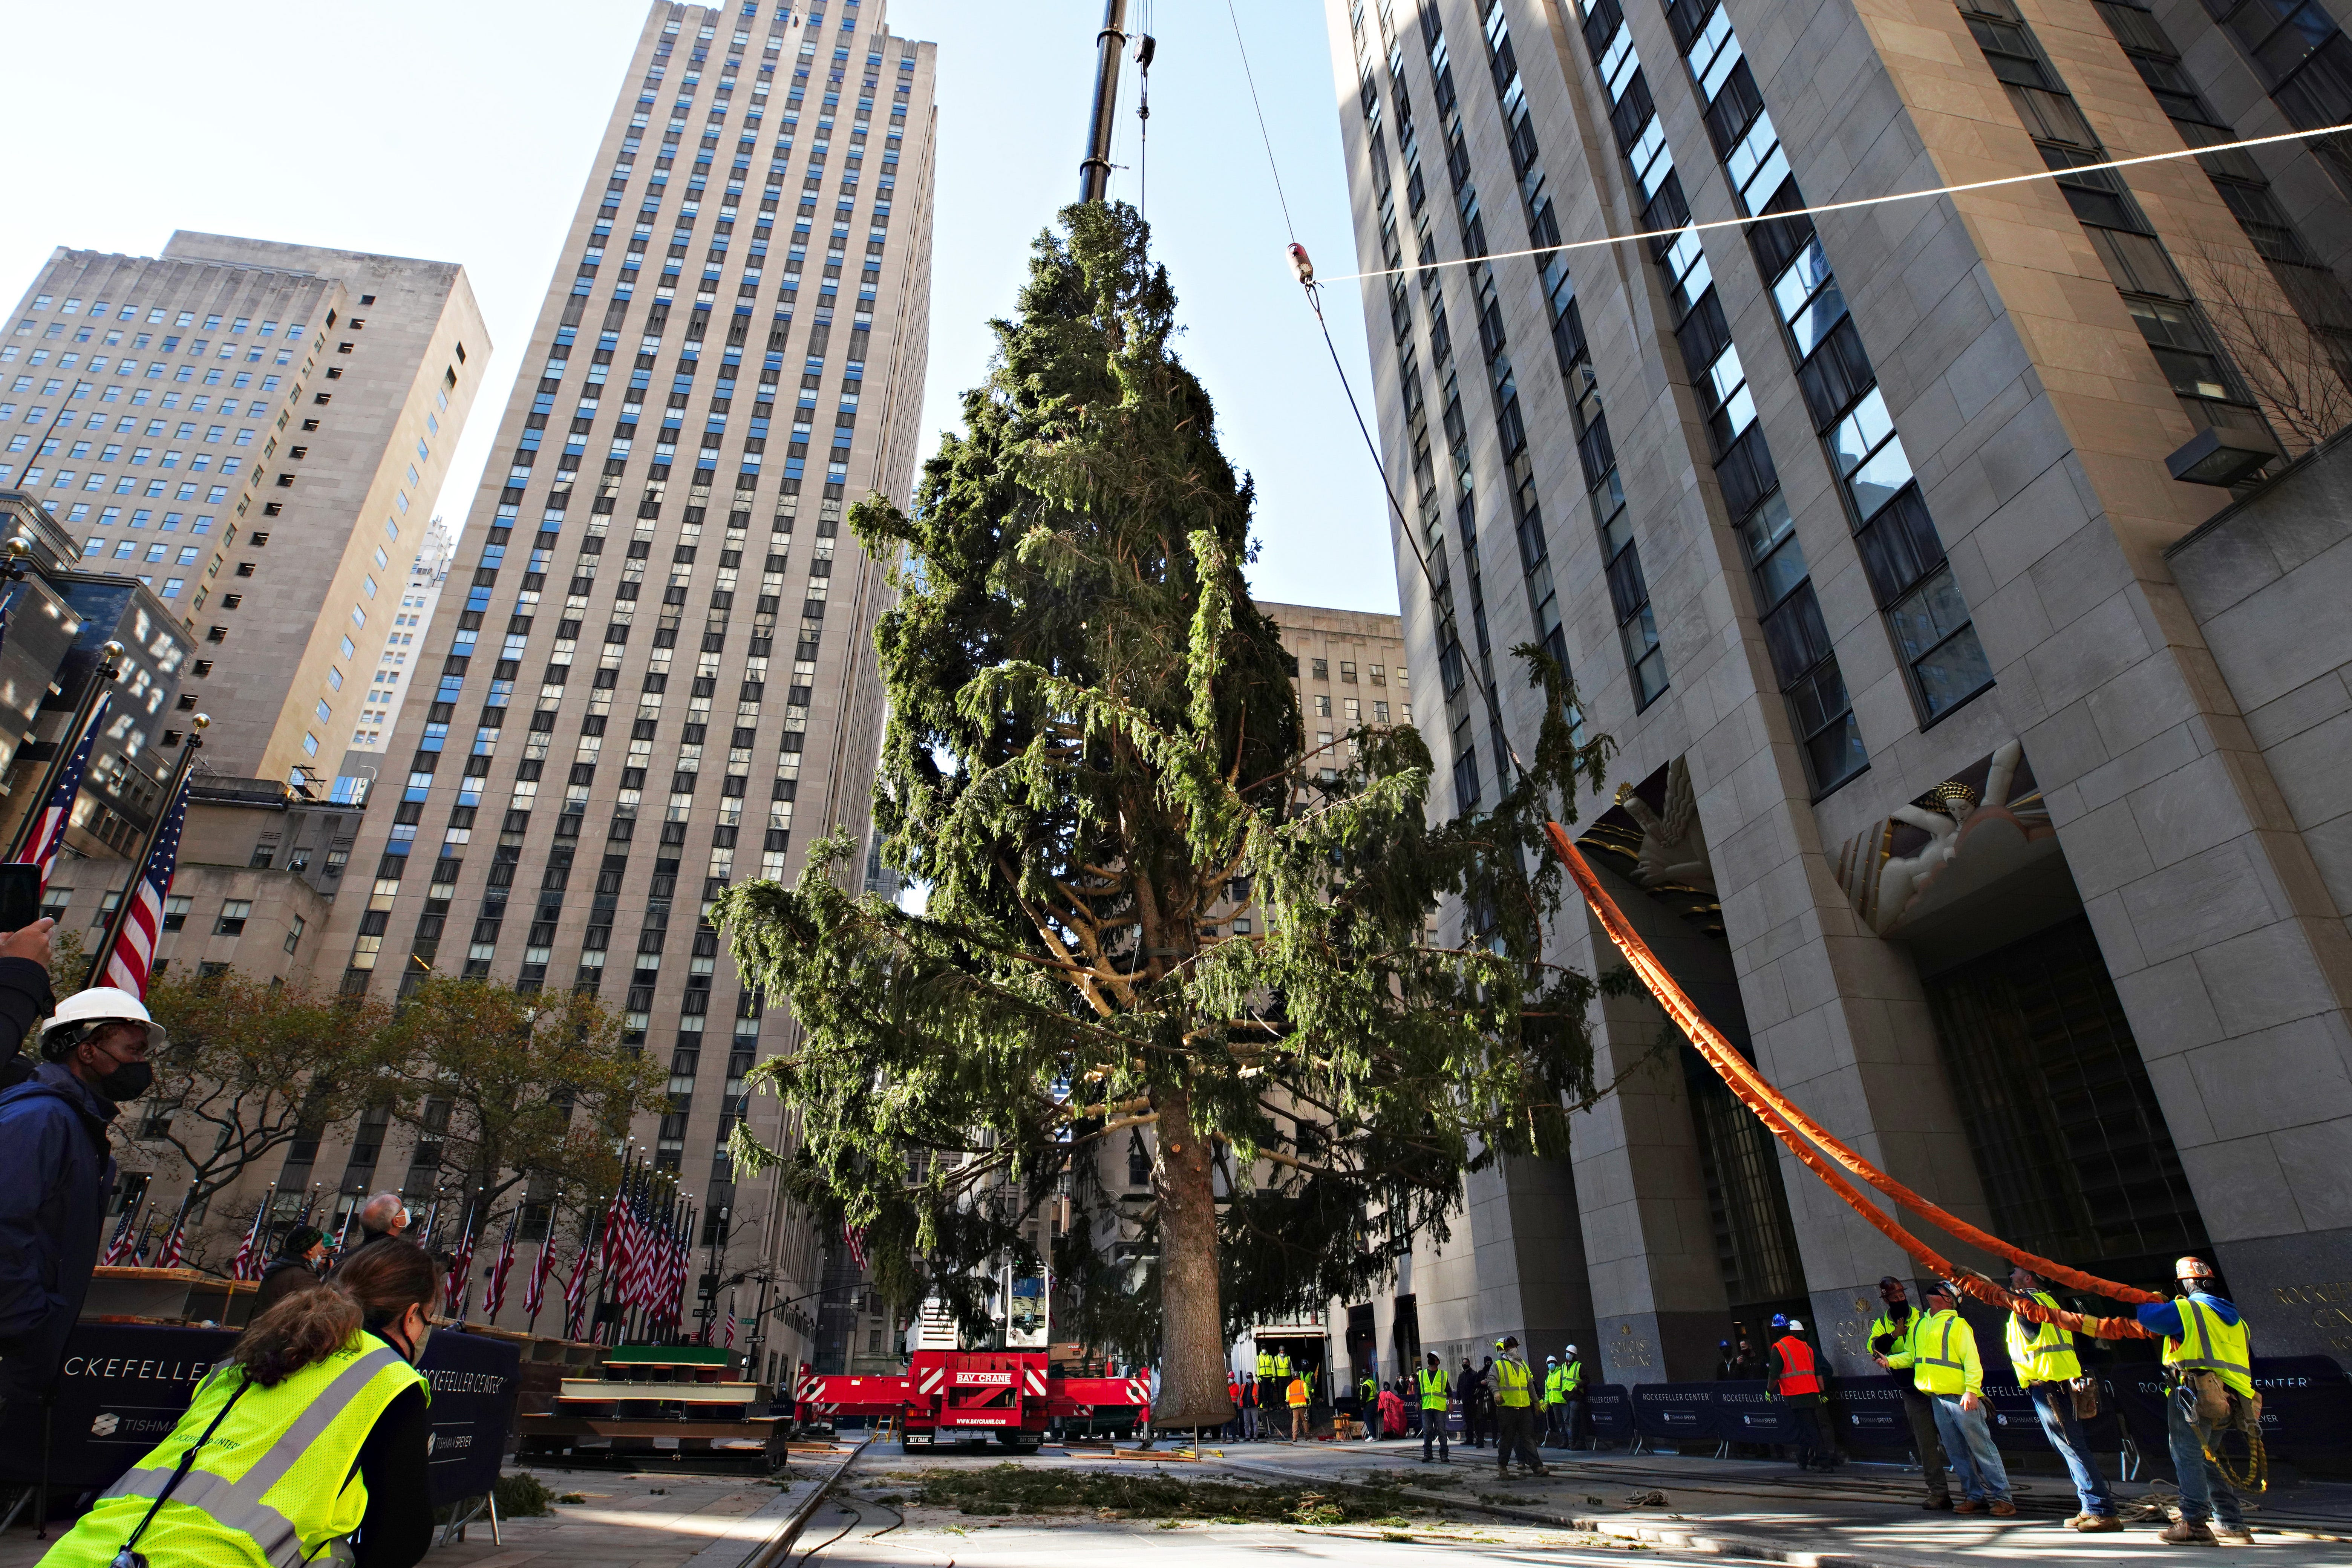 Peak 2020: Early Christmas cheer hilariously crushed by 'saddest' Rockefeller Center tree